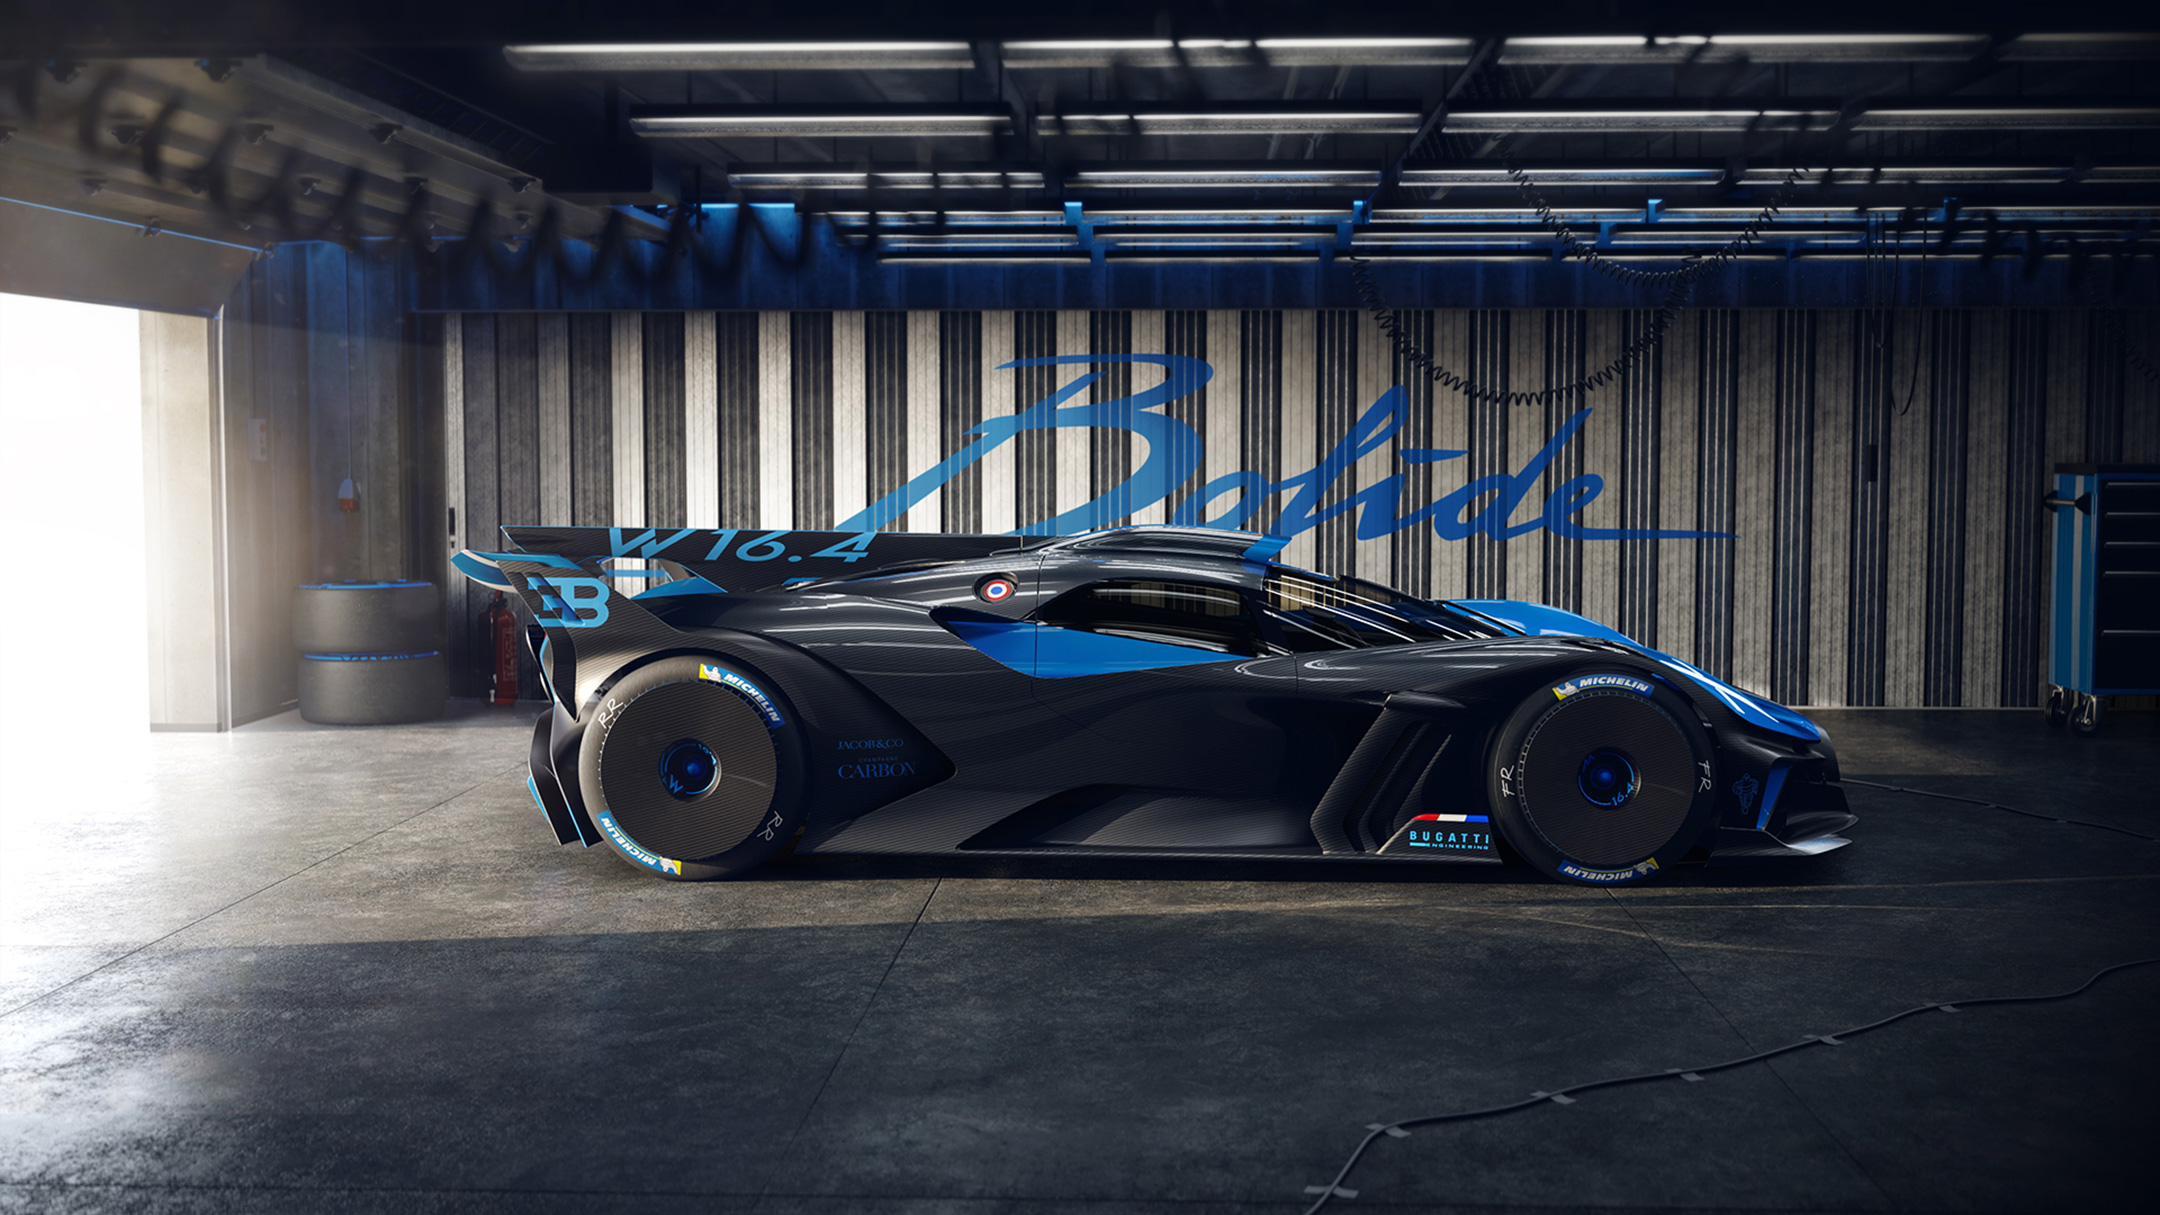 Bugatti Bolide - 2020 - side-face / profil - box - on track / sur circuit